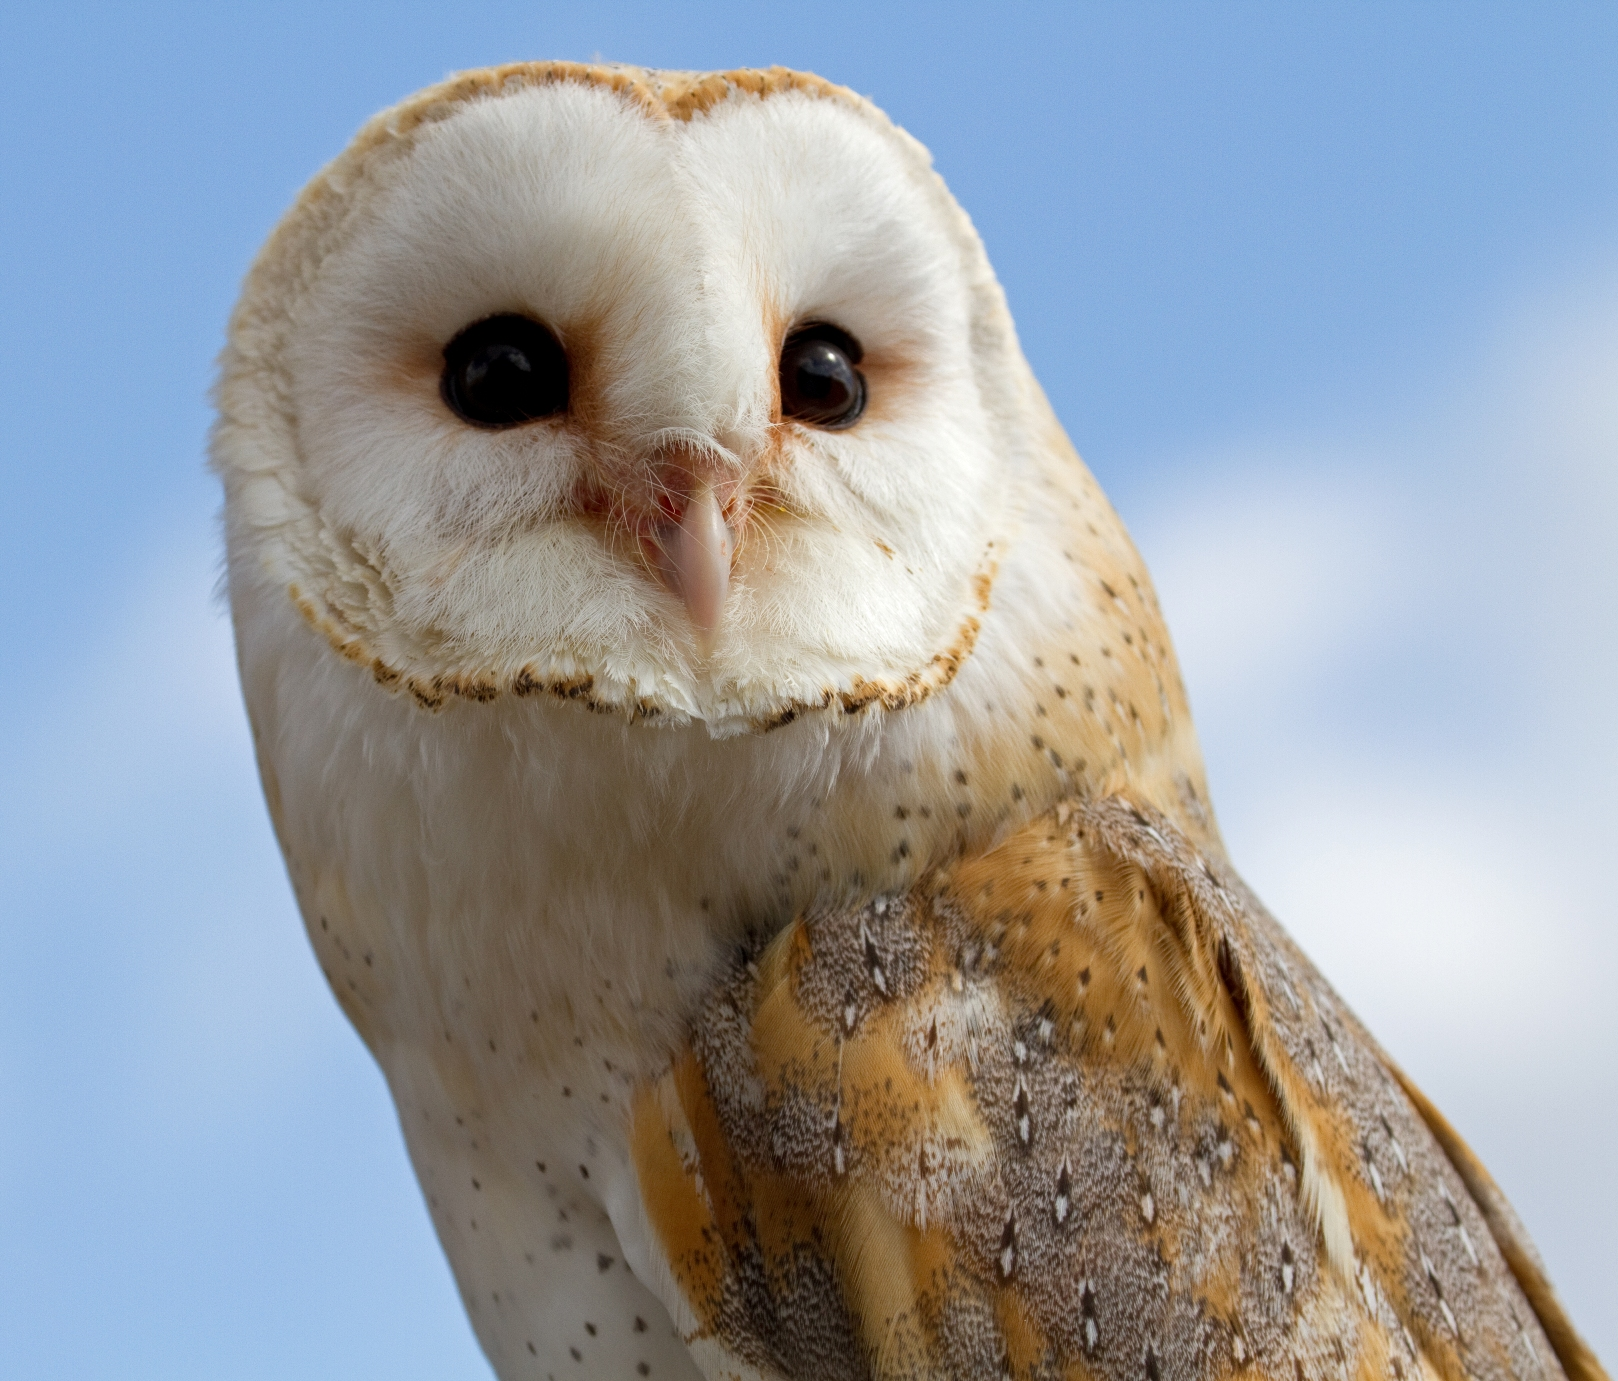 Barn Owl Face Photo And Wallpaper All Barn Owl Face Pictures